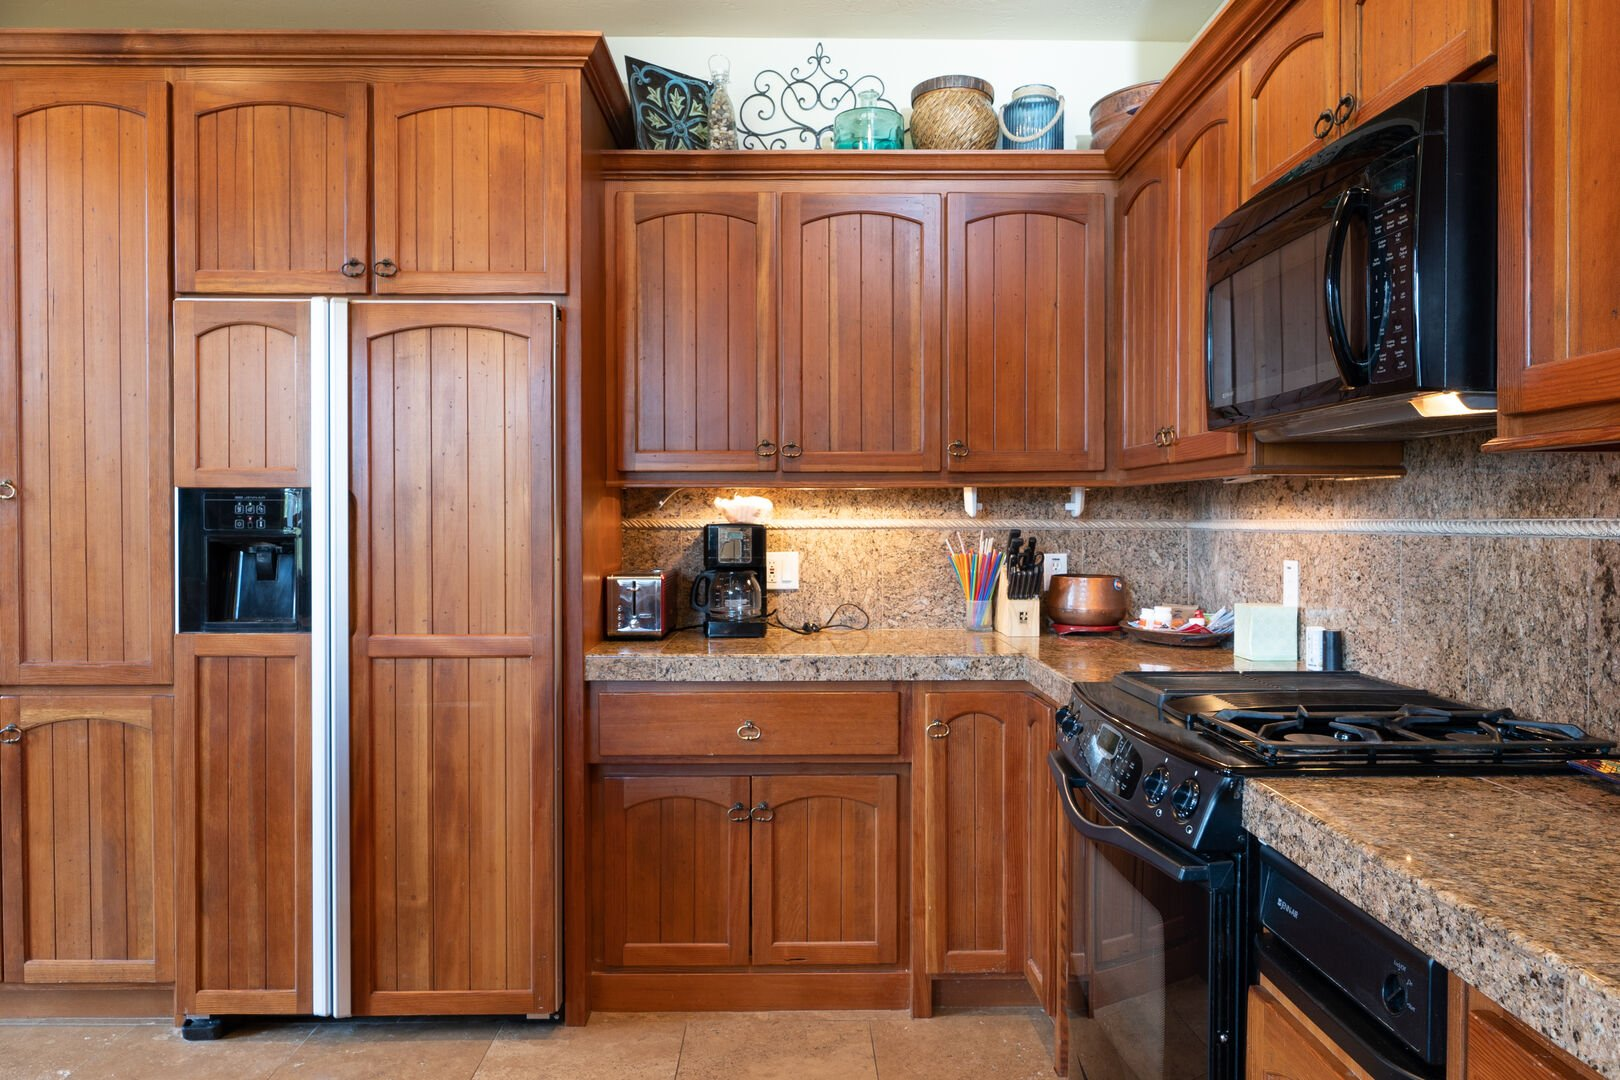 Kitchen is stocked with everything you need to cook a great meal